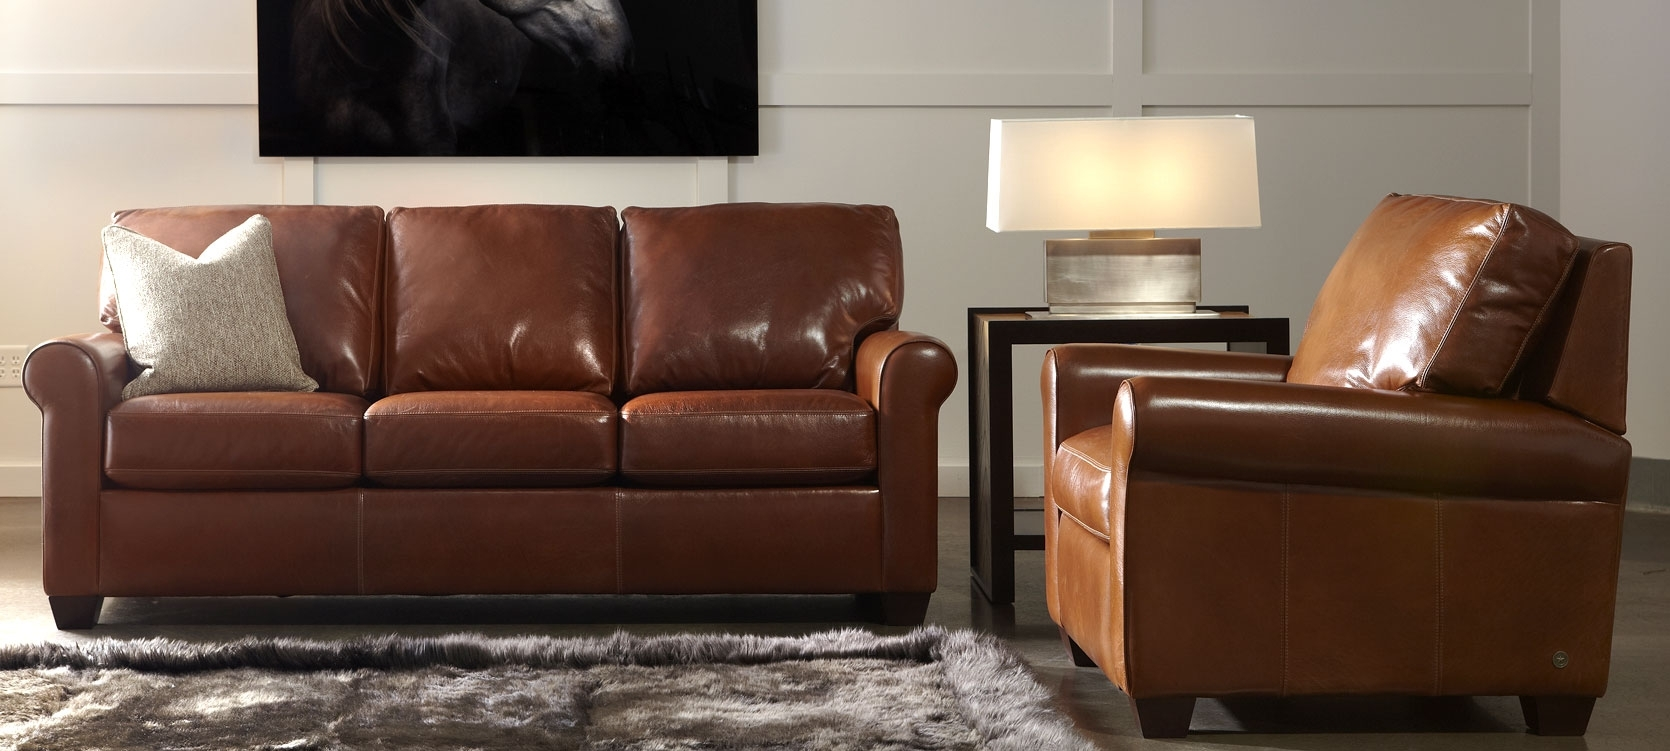 Furniture Store In Eugene, Oregon - Riley's Real Wood Furniture inside Eugene Oregon Sectional Sofas (Image 10 of 10)